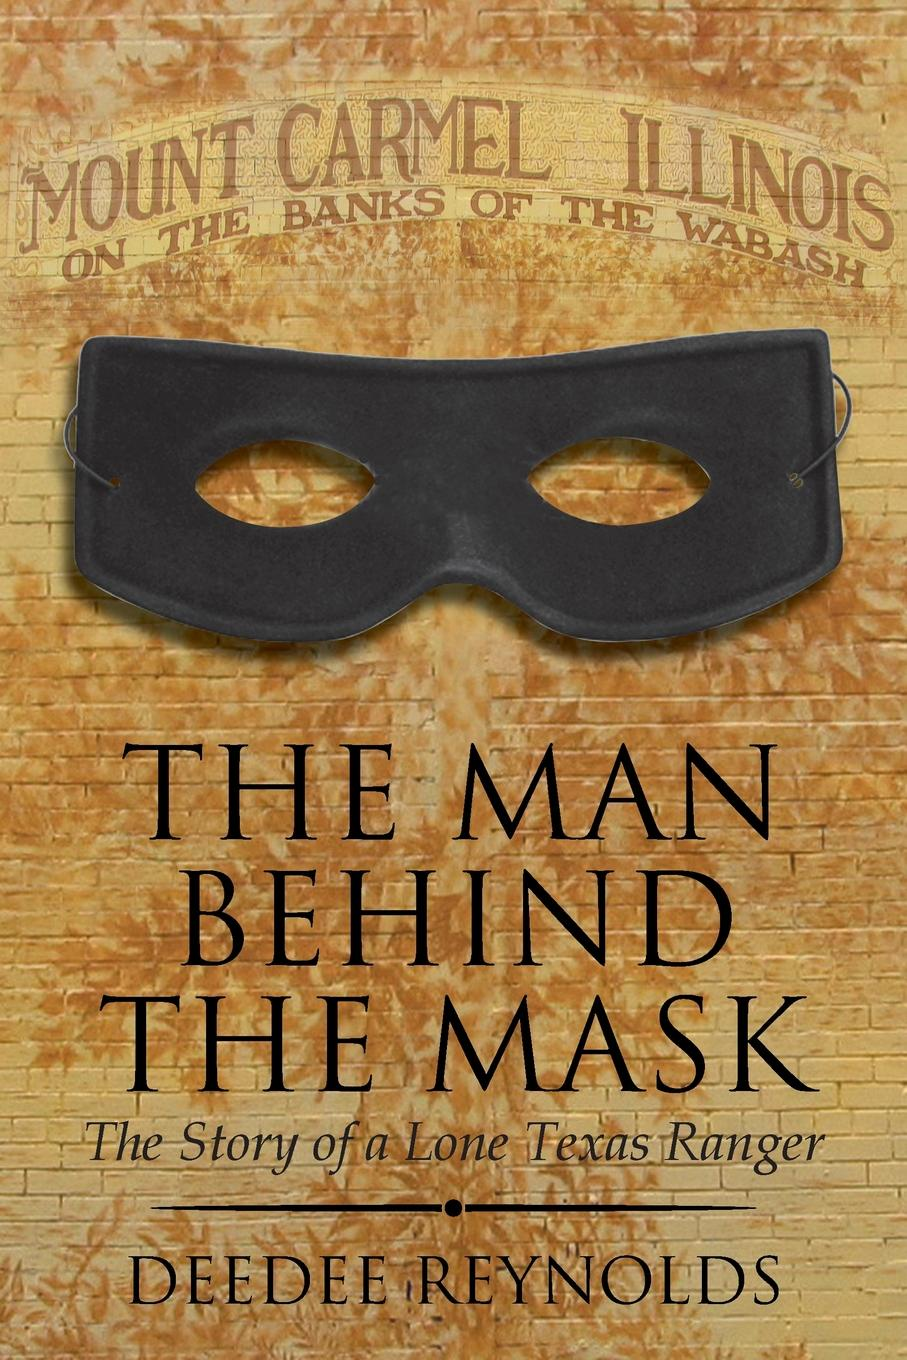 Deedee Reynolds The Man Behind the Mask. The Story of a Lone Texas Ranger carol finch texas ranger runaway heiress